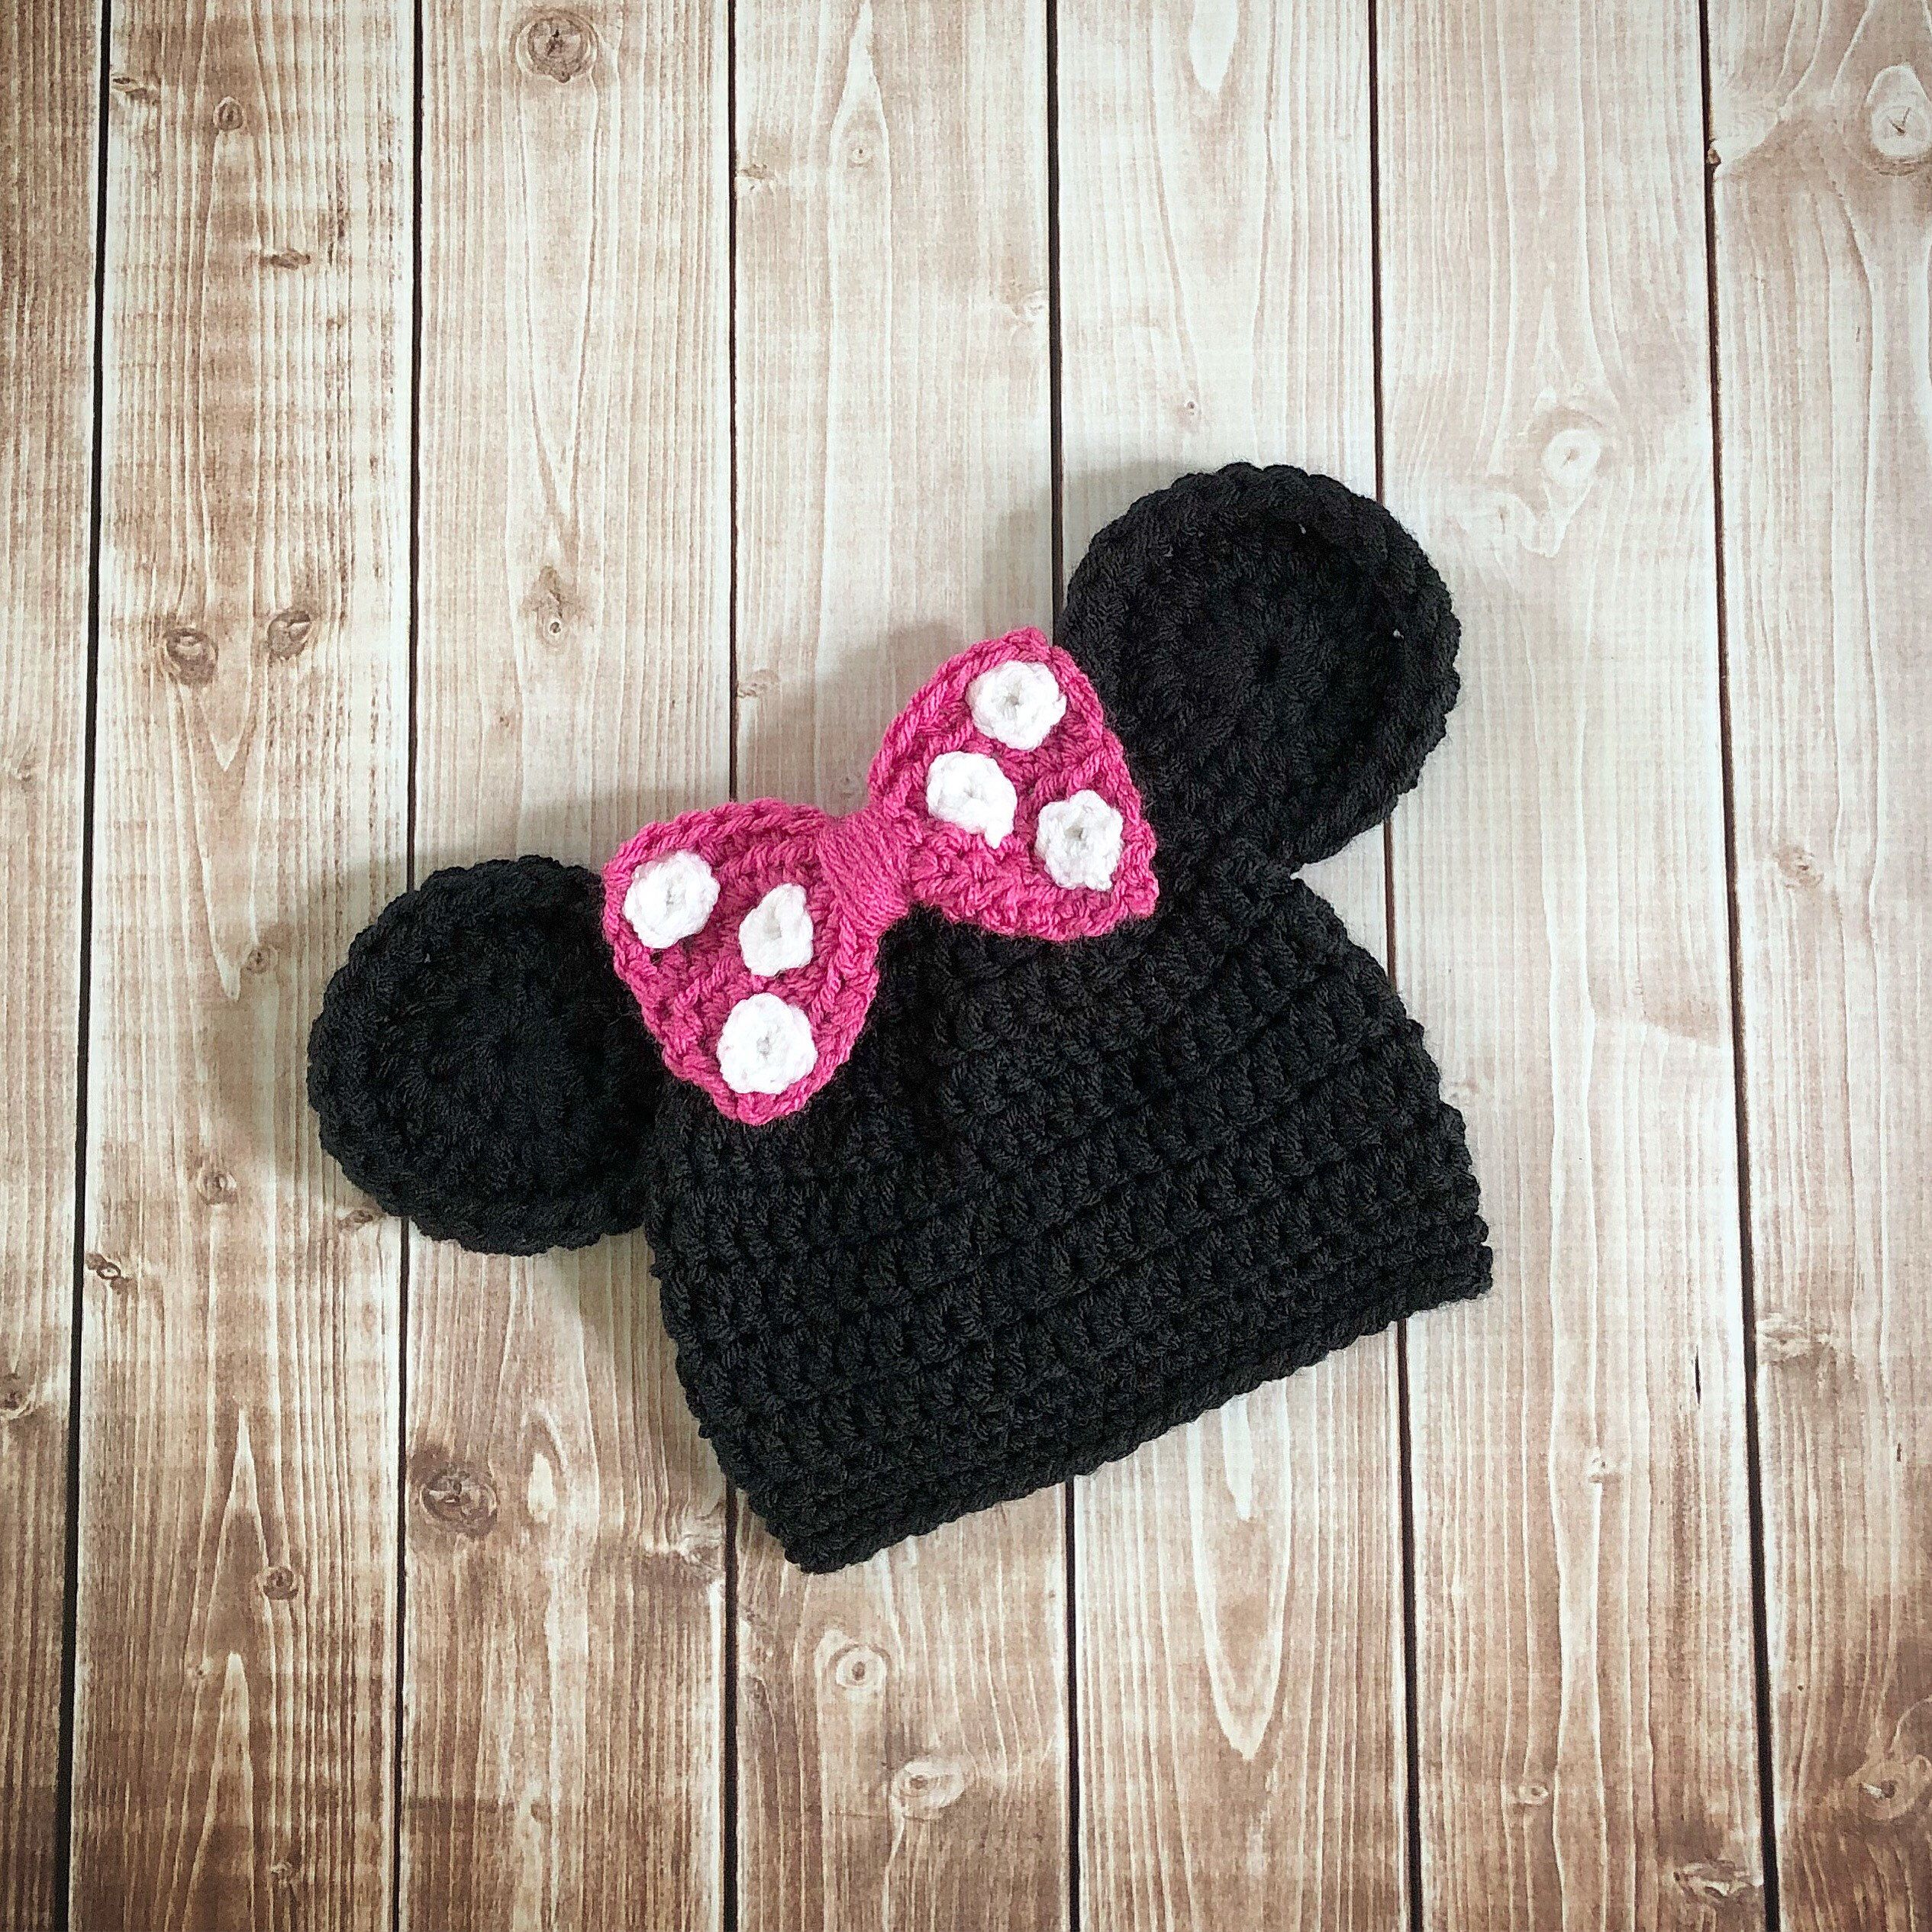 dcd396e3dc3 Excited to share this item from my  etsy shop  Minnie Mouse Inspired Hat  Crochet  Minnie Mouse Hat  Available in Newborn to Adult Size- MADE TO ORDER